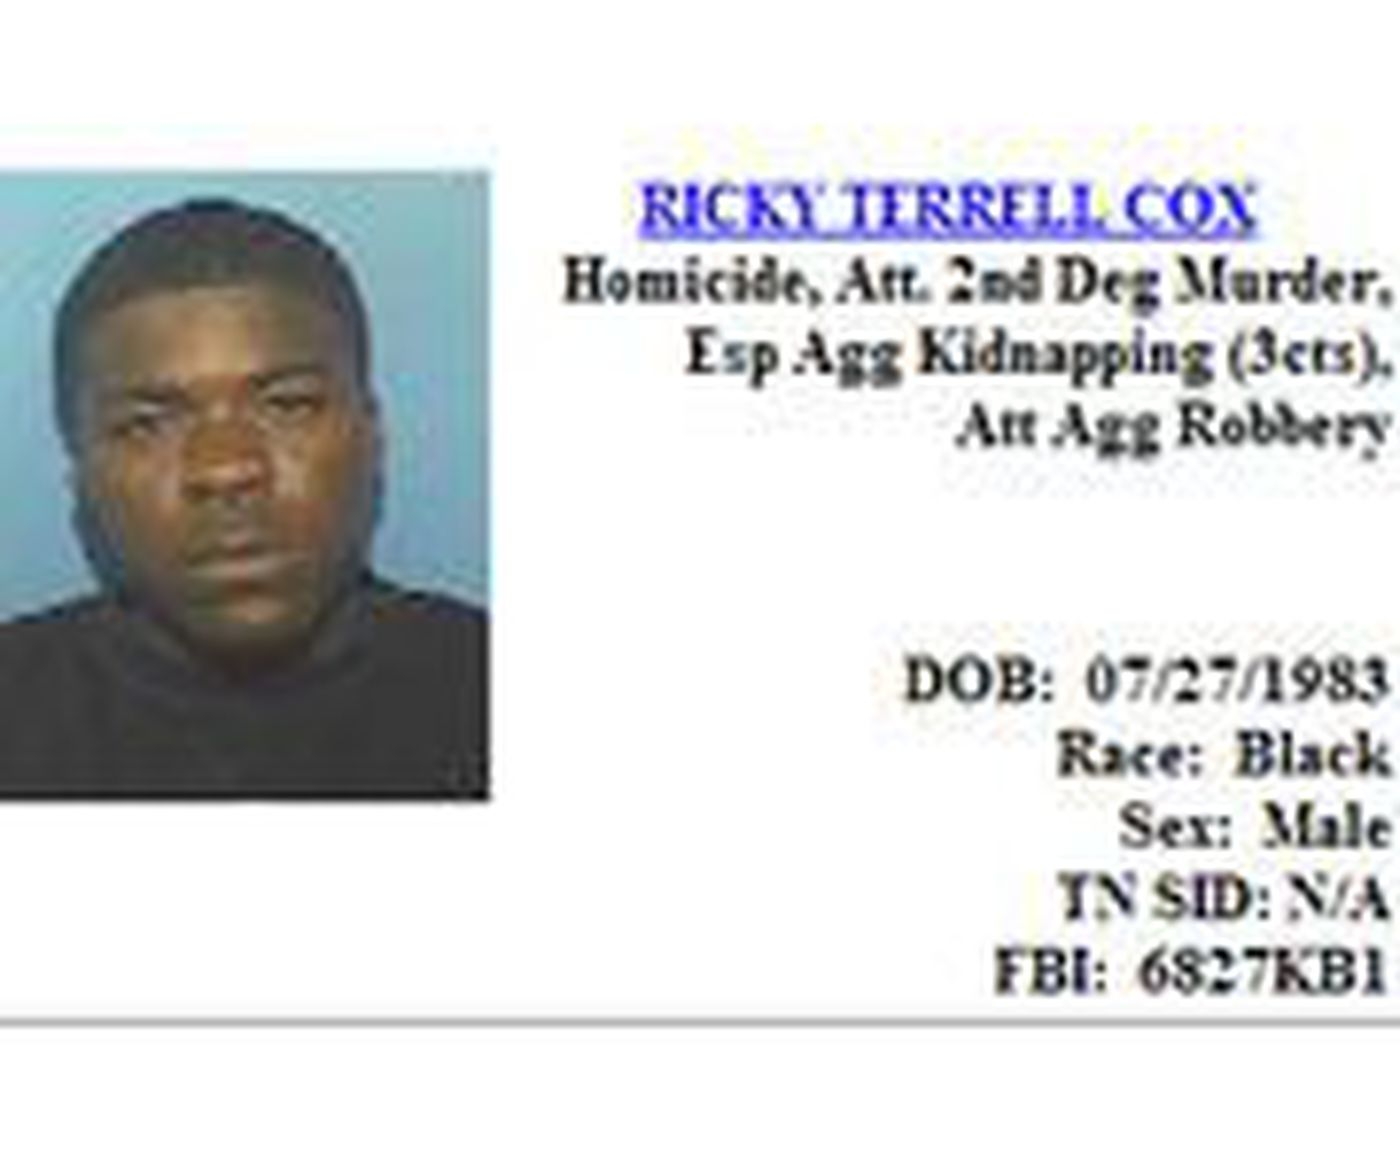 One of Two of Tennessee's 'Most Wanted' Found in West Memphis